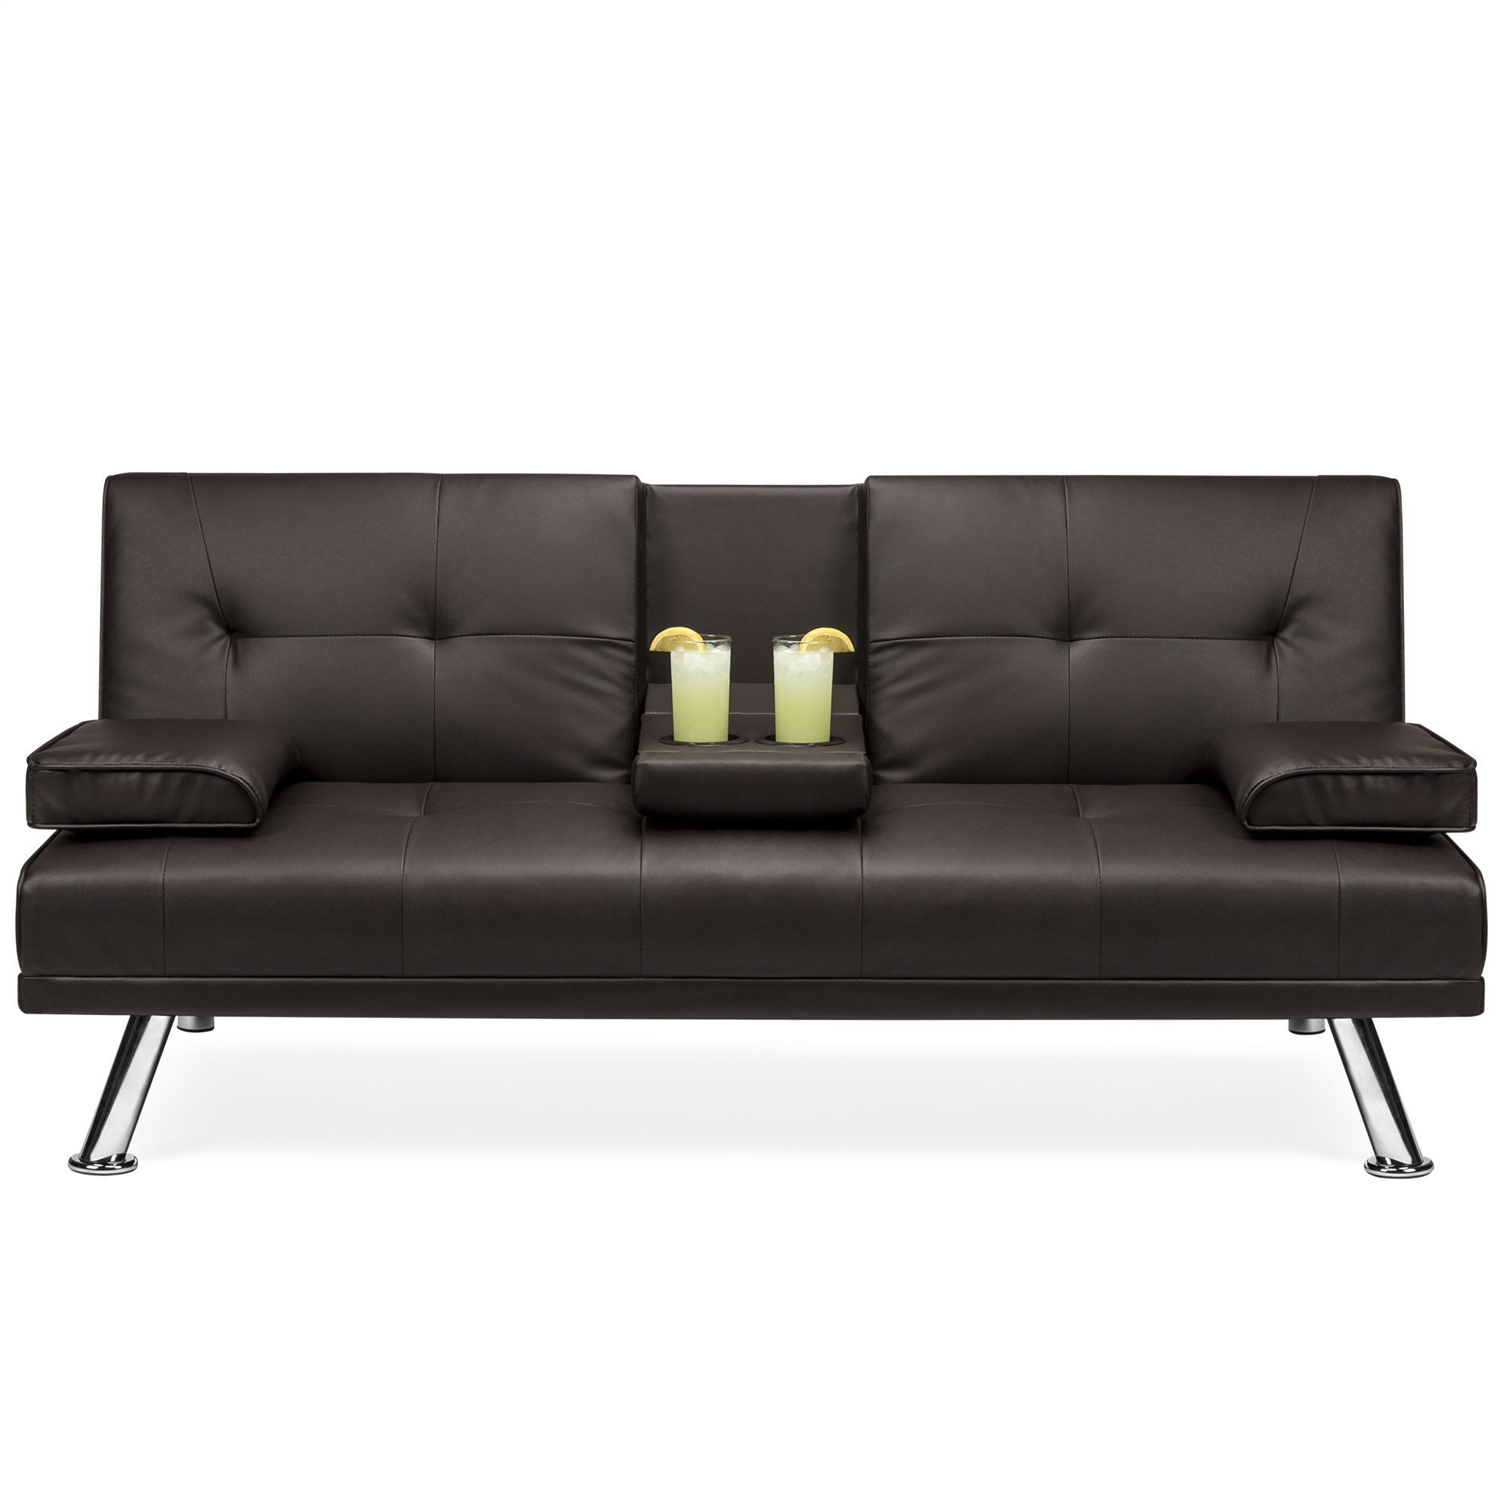 Brown Faux Leather Convertible Sofa